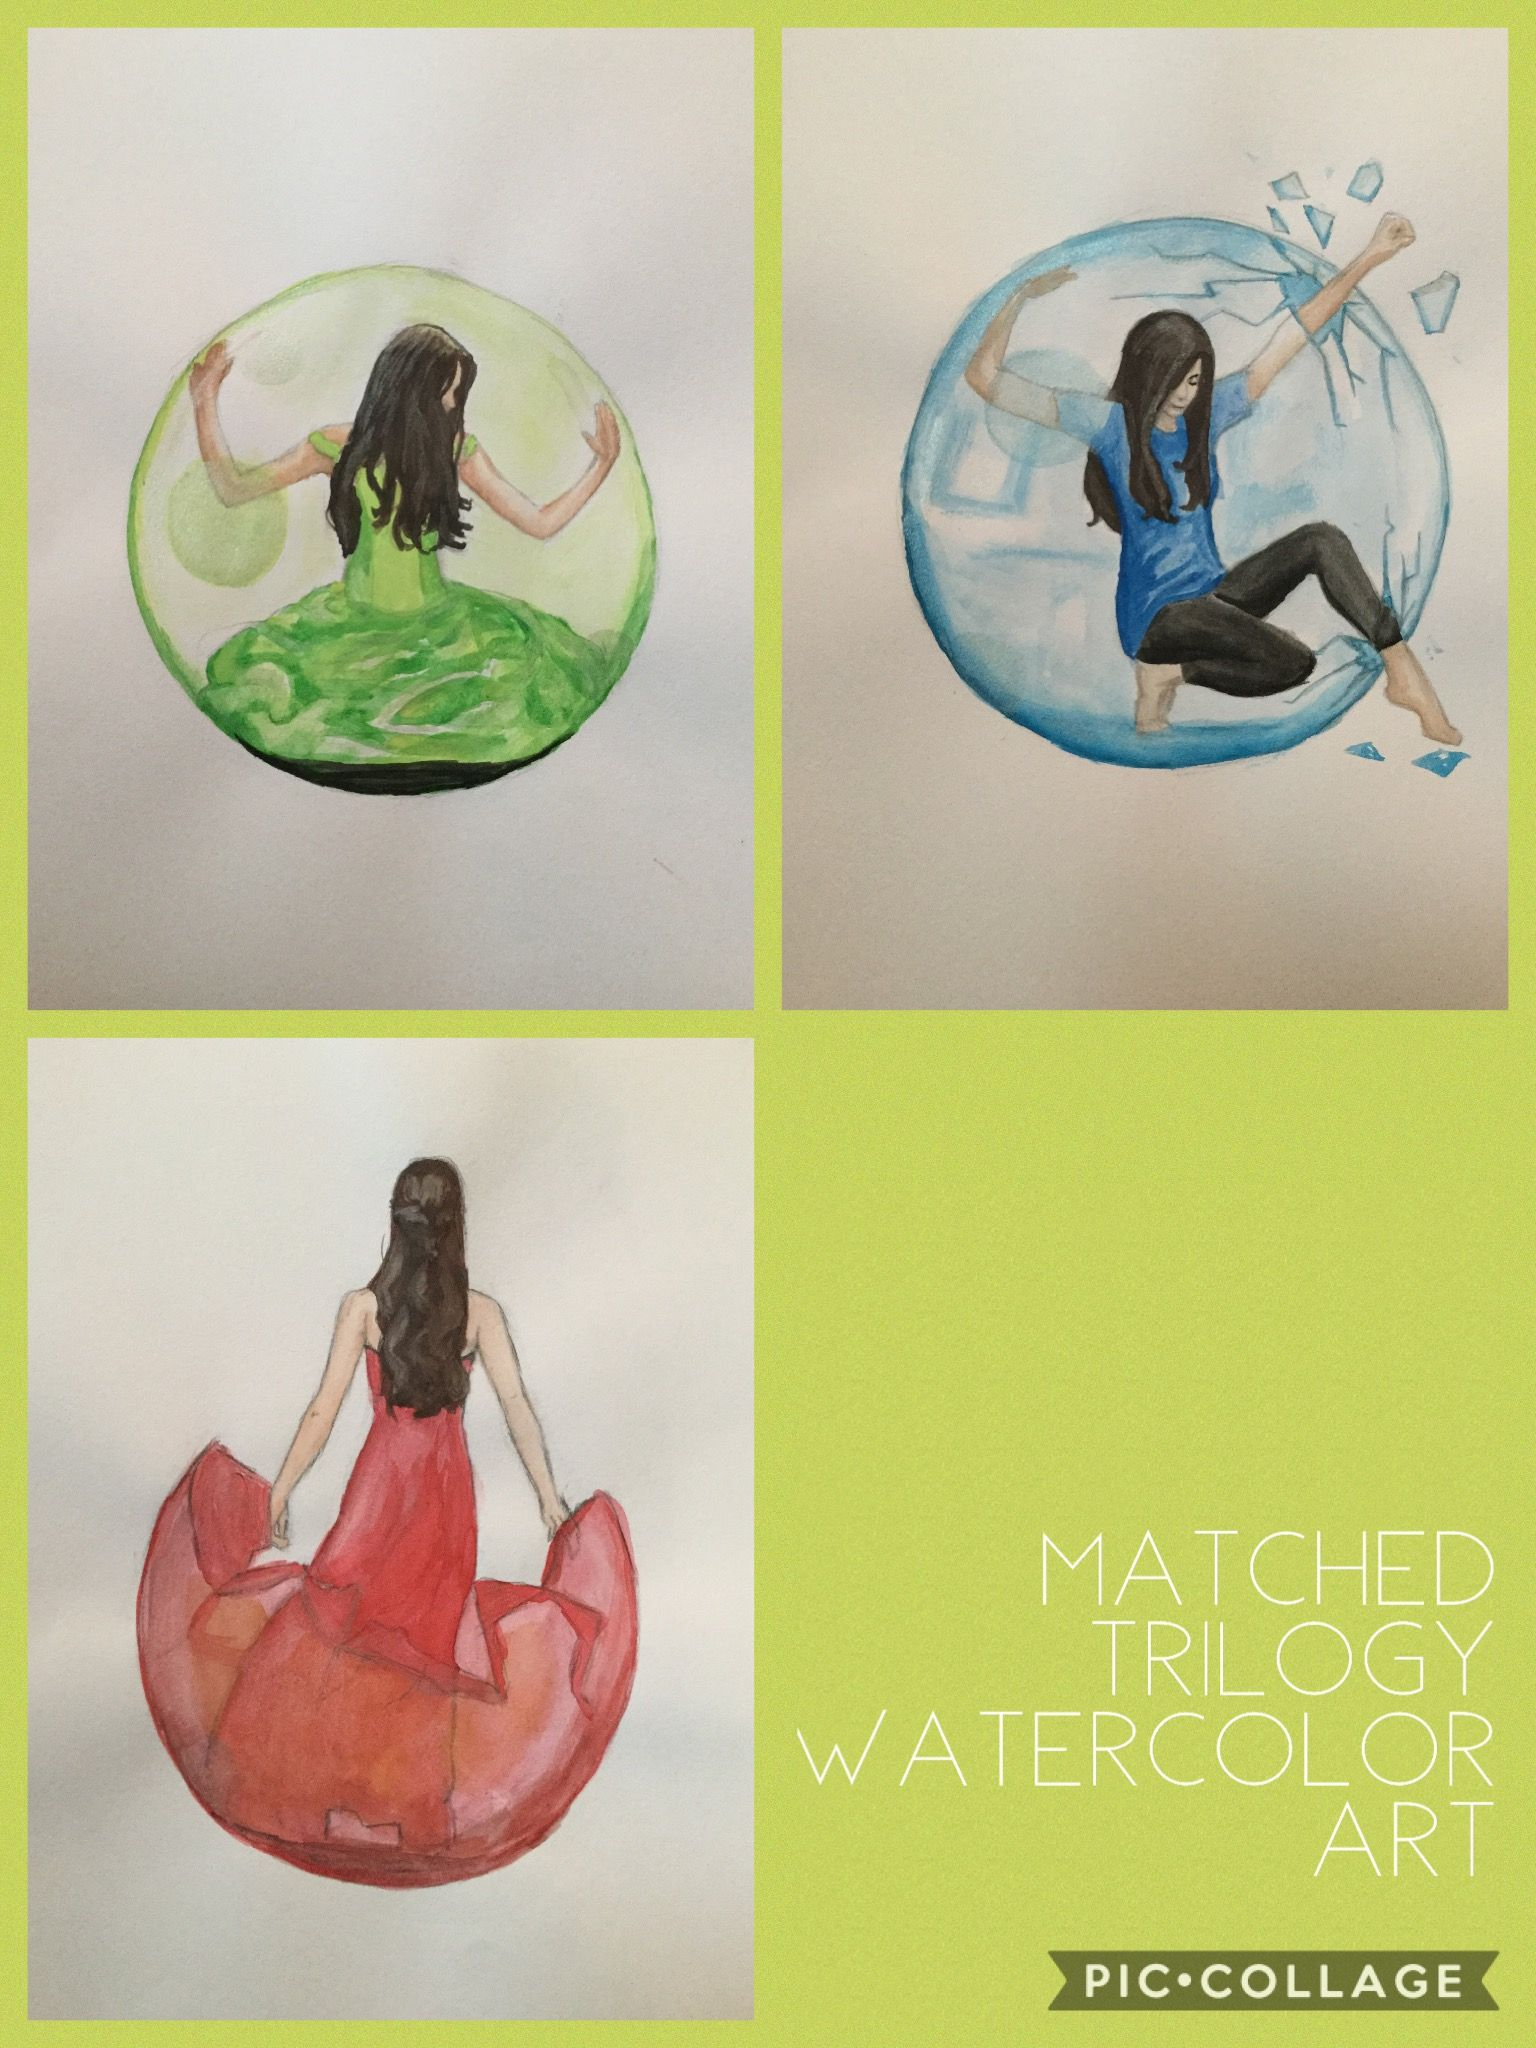 Watercolor book covers - Matched Trilogy Watercolor Art Matched Crossed Reached Book Cover Art